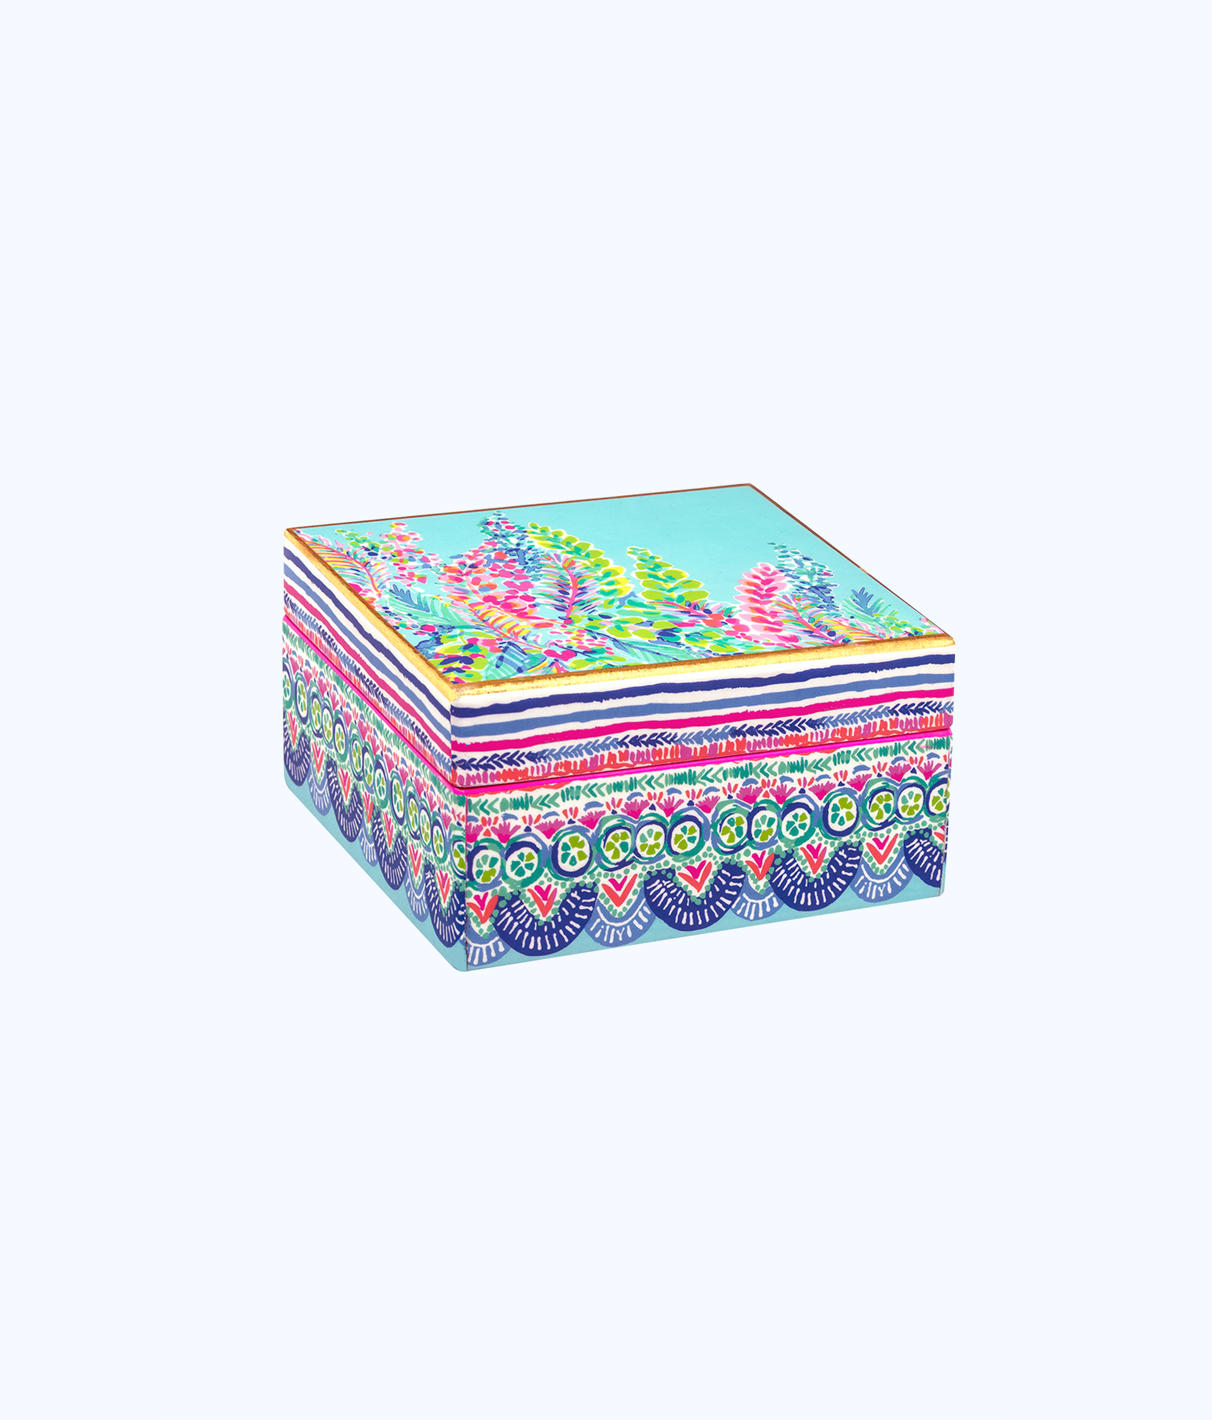 Lilly Pulitzer Lilly Pulitzer Small Lacquer Box